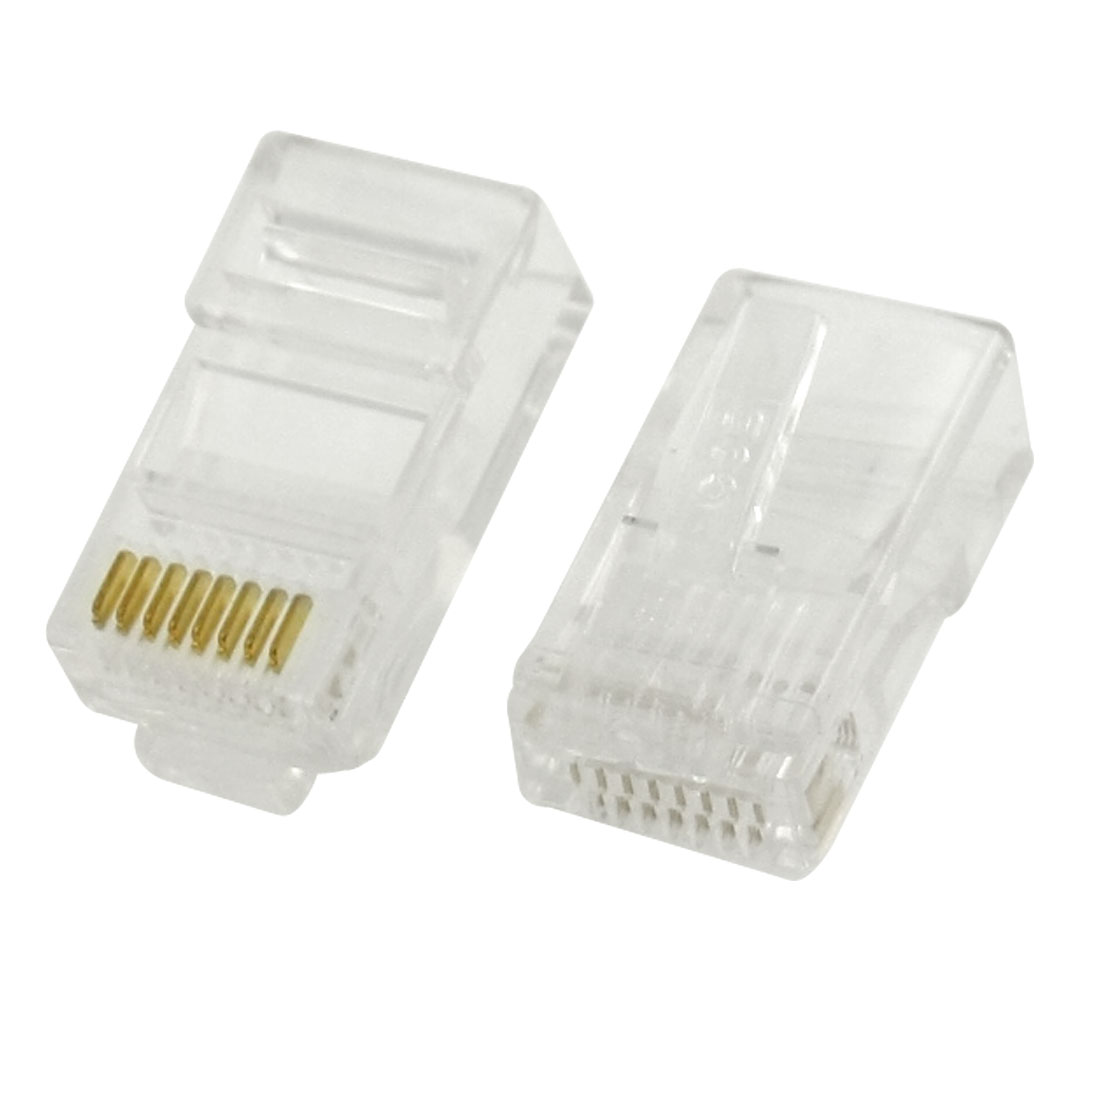 100 Pcs Clear Plastic Shell RJ45 Plug Cat5E Lan Network Connectors